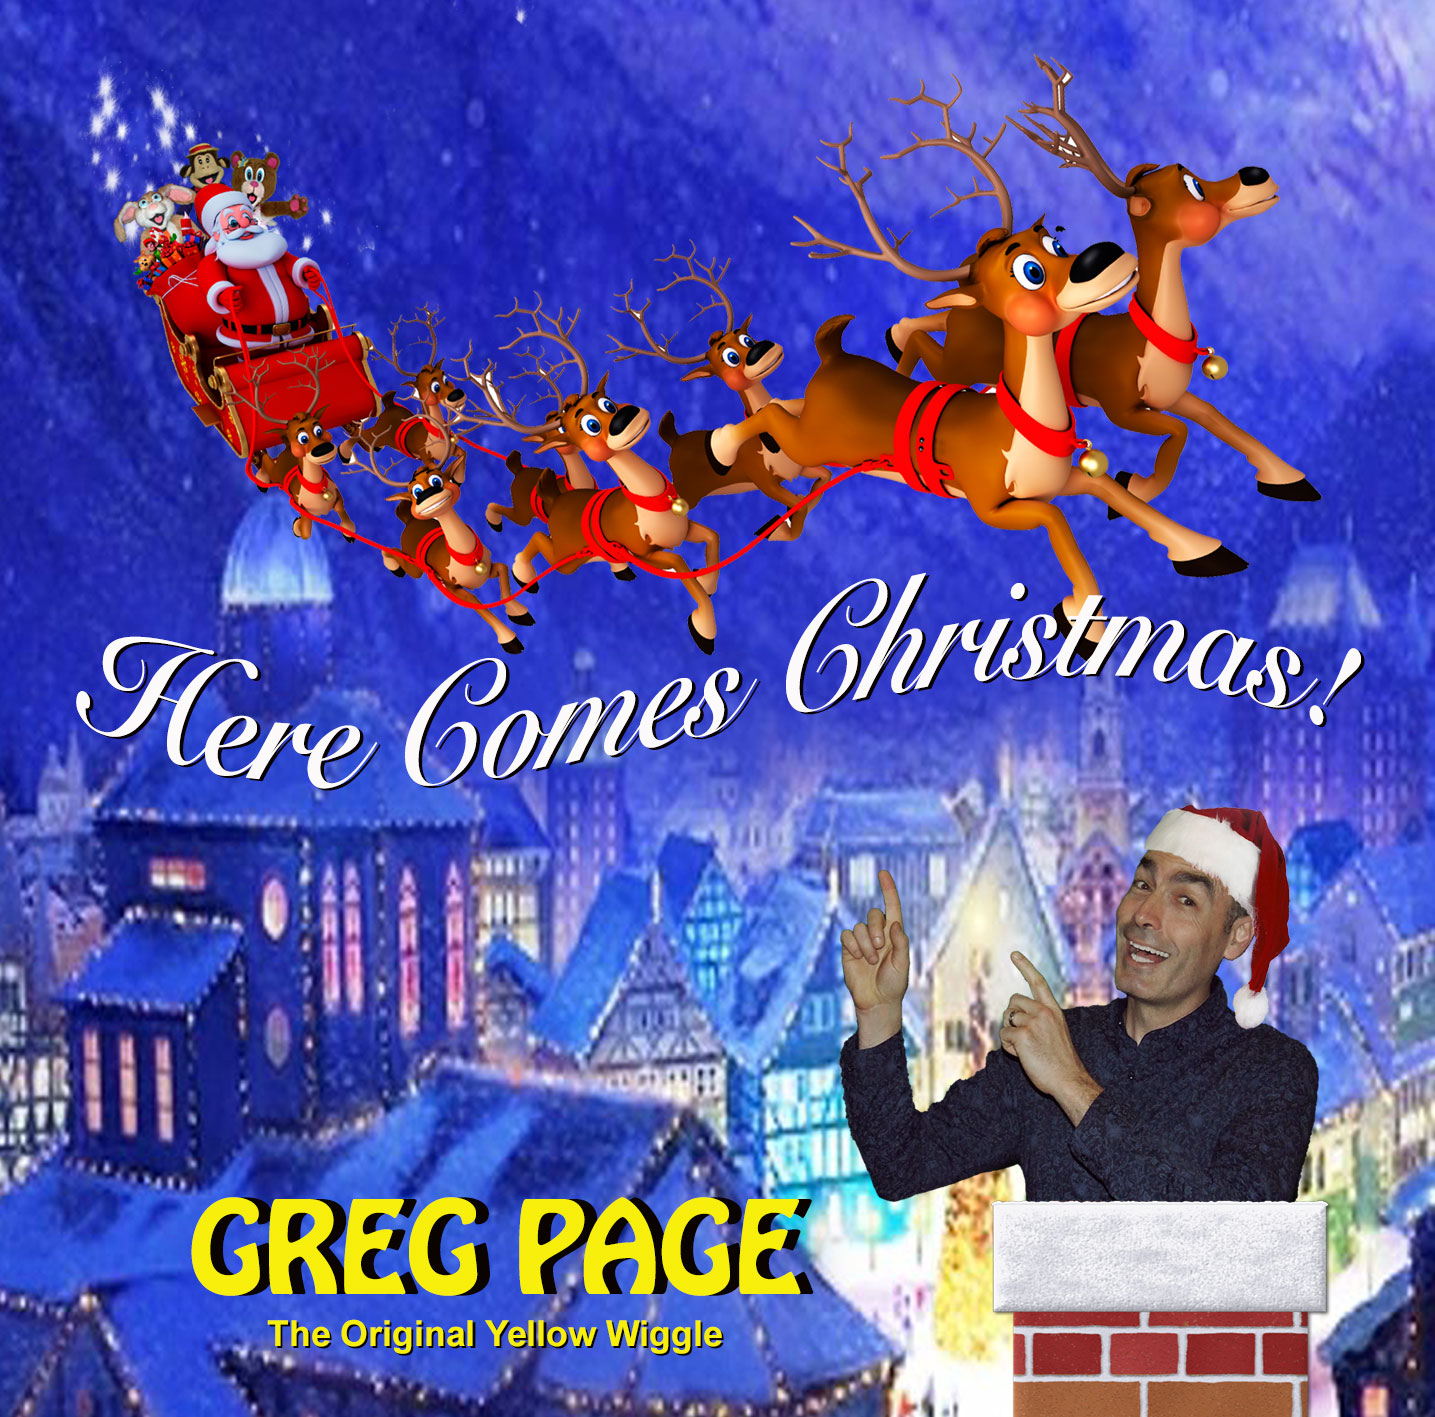 Christmas Album Cover Art.Here Comes Christmas From The Original Yellow Wiggle Greg Page